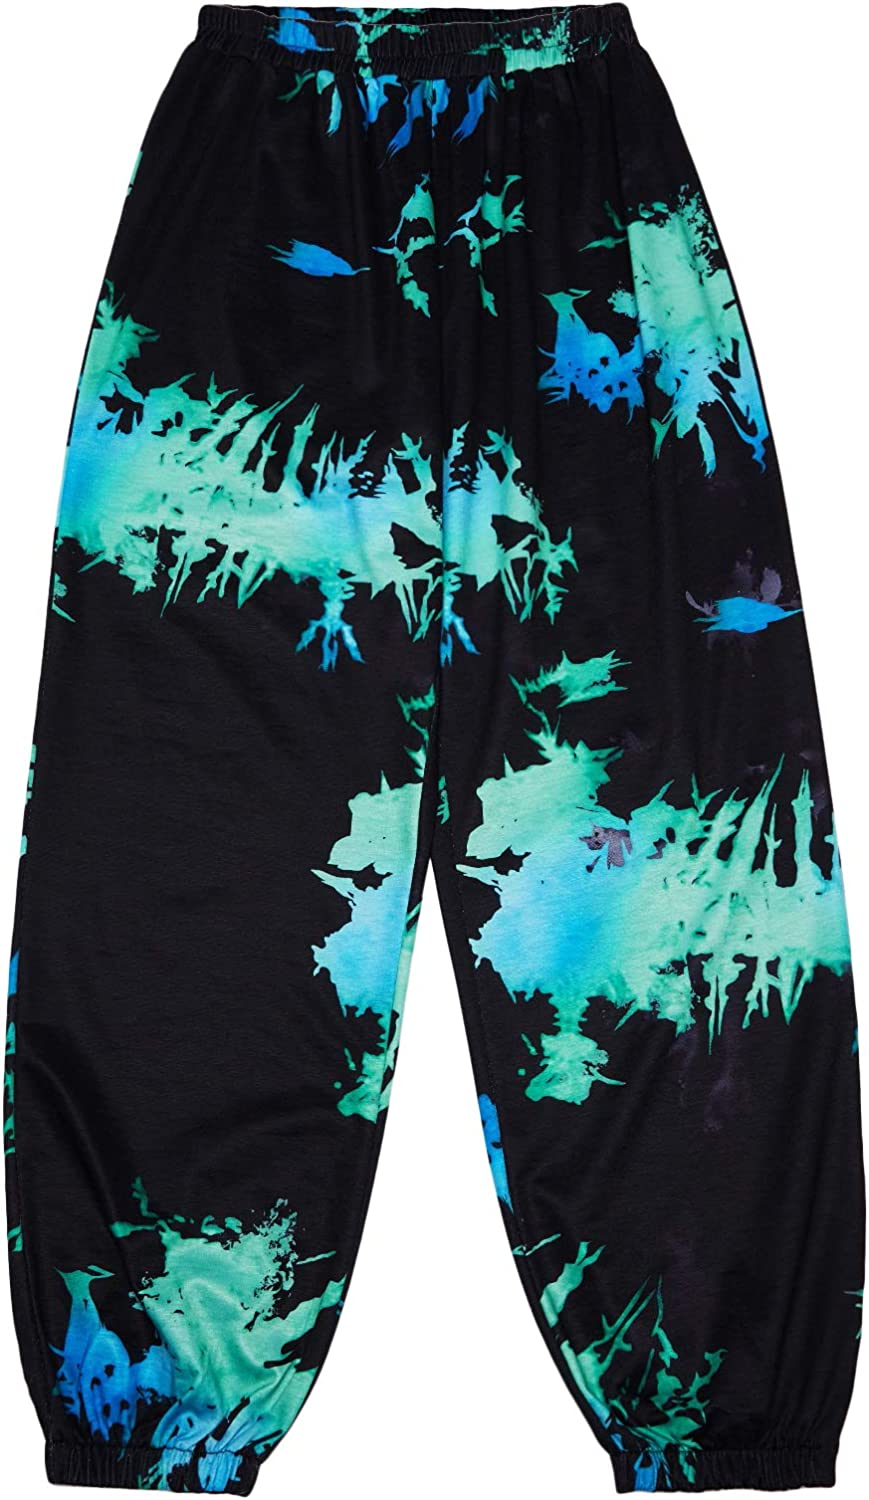 SOLY HUX Women's Casual Elastic High Waisted Tie Dye Sweatpants Joggers Pants